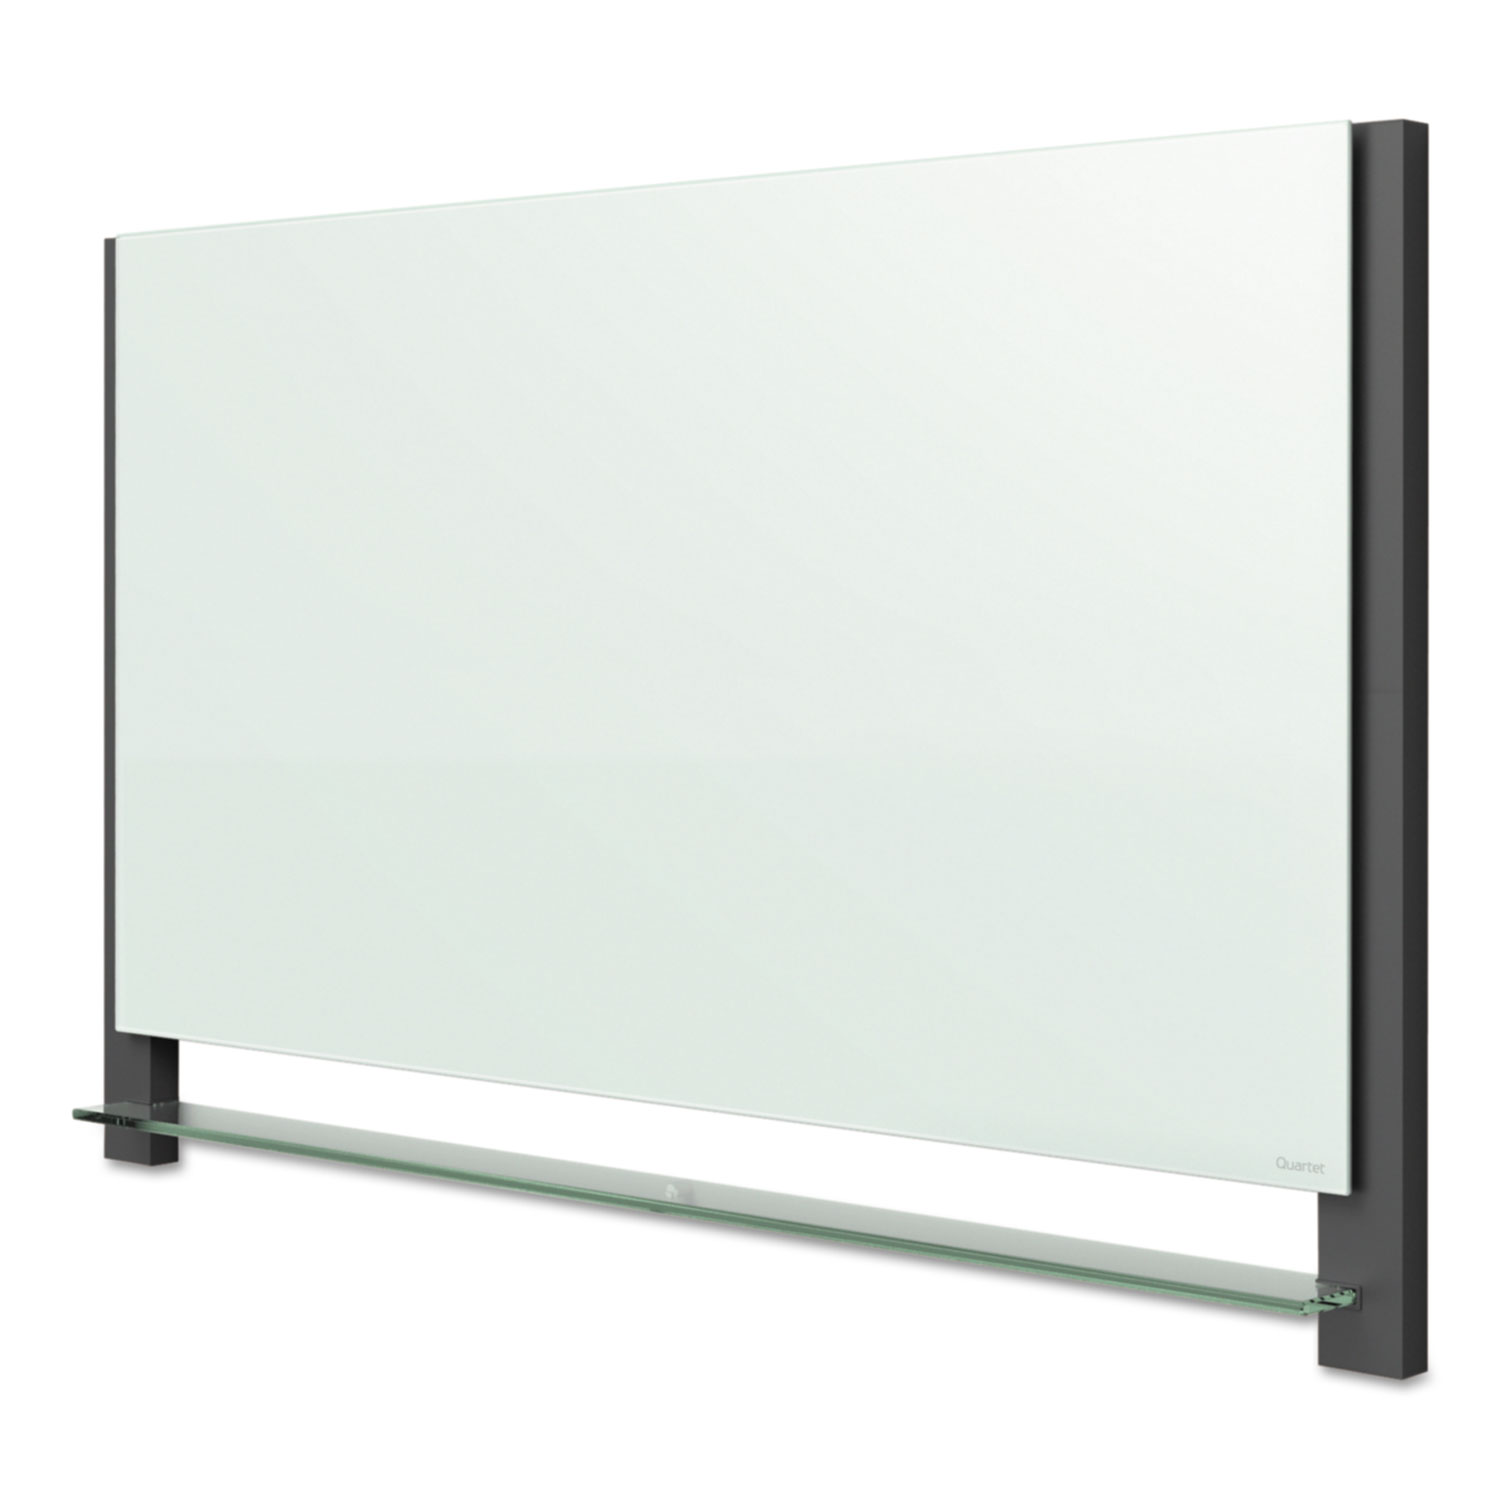 Picture of Evoque Magnetic Glass Marker Board with Black Aluminum Frame, 74 x 42, White